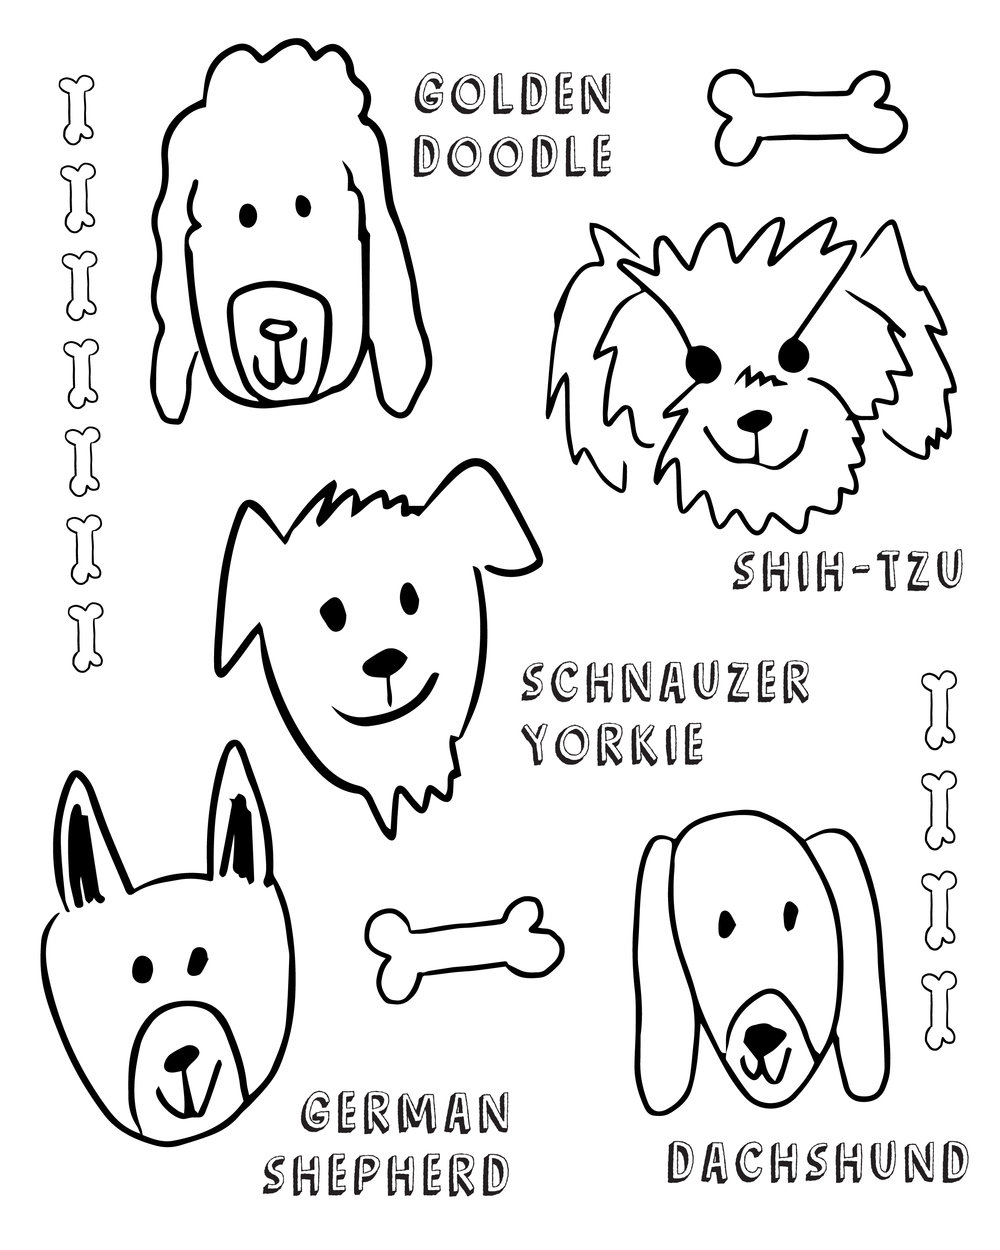 Puppy Party for  First birthday freebie dog coloring page, golden doodle, shih tzu